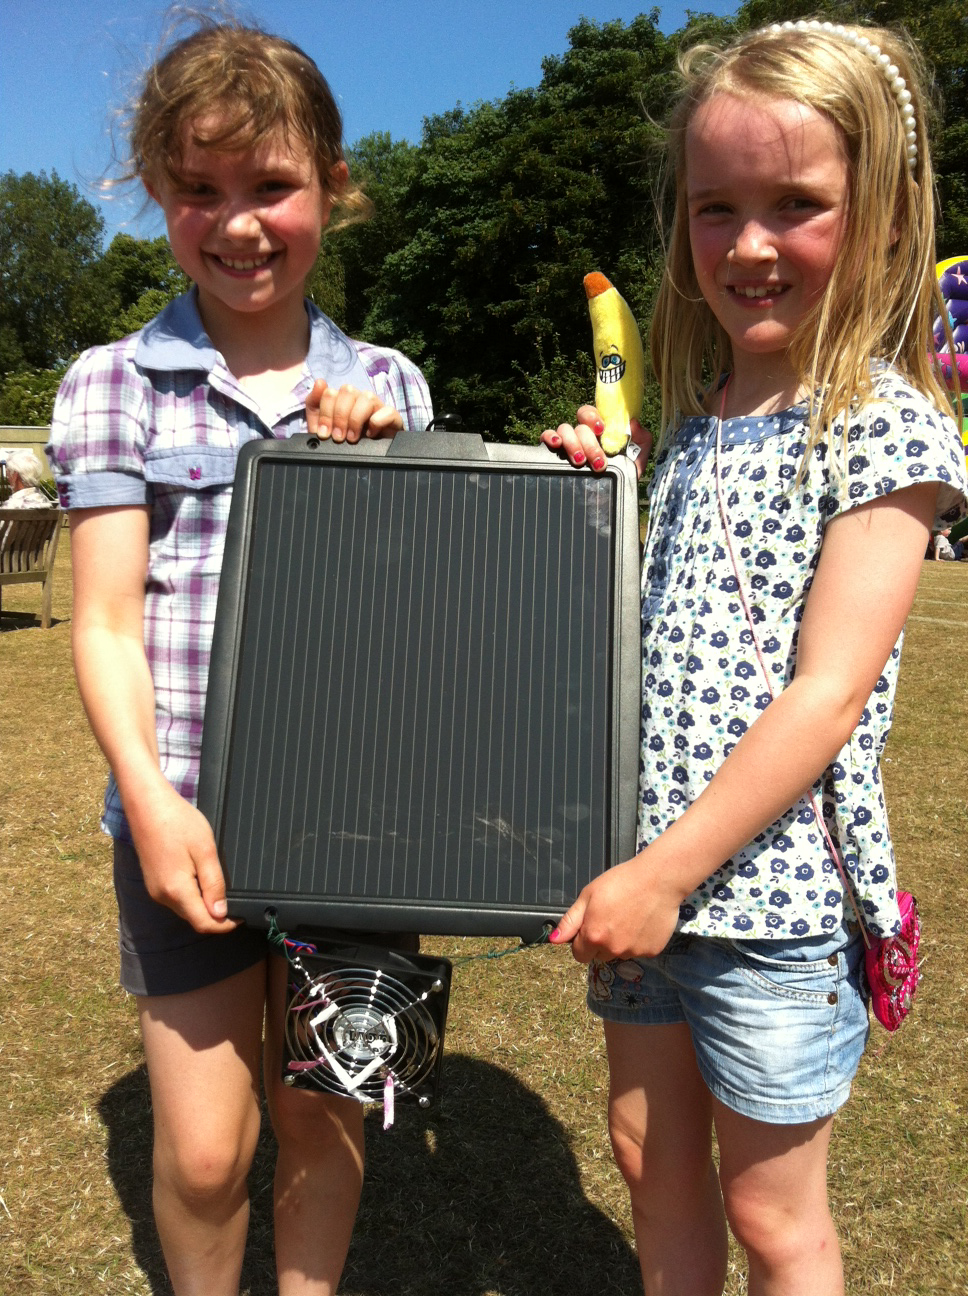 solar panel with Hen At Mill Mead Fete 2 on Japan Passes Fit Peak Now What For 87 Gw Re Queue 2030 Energy Mix besides Solar Patio moreover Solar Panel Pictures further Fotovoltaicky Solarni Panel Cnpv 245wp together with Hen At Mill Mead Fete 2.